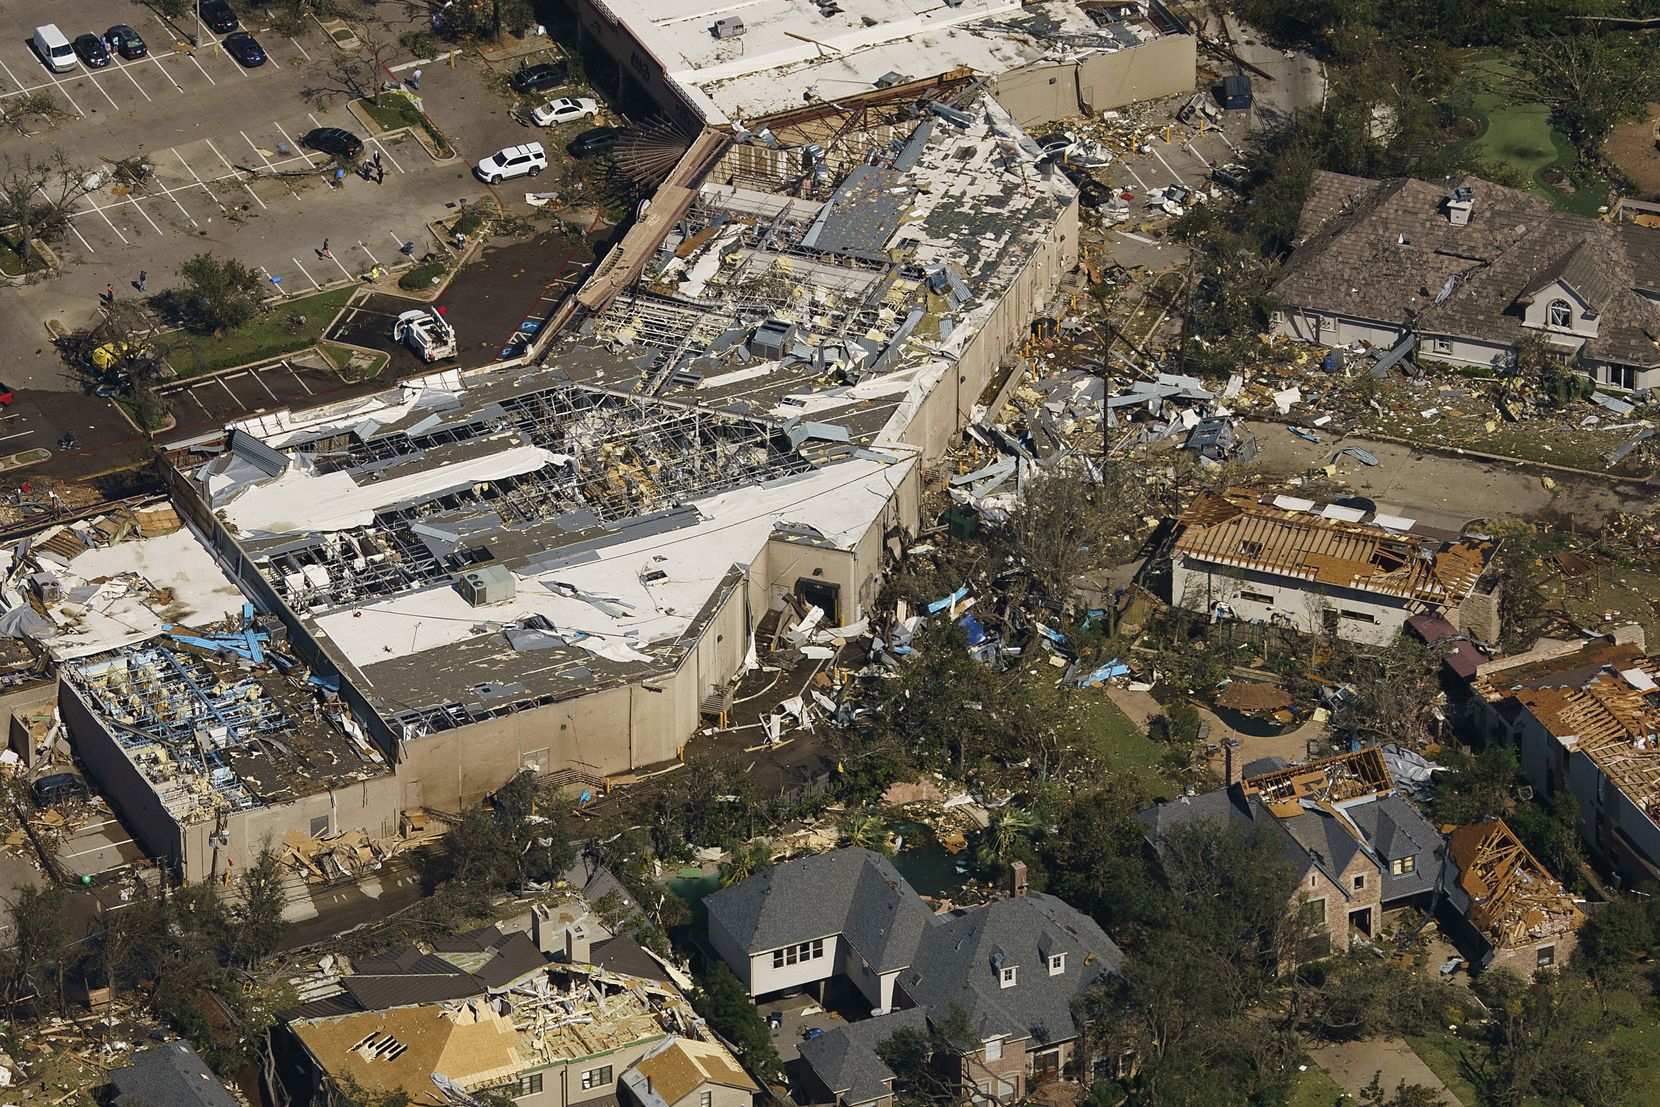 Damage is seen to the Preston Royal shopping center and neighboring homes in an aerial view of the tornado's aftermath on Monday, Oct. 21, 2019, in Dallas.